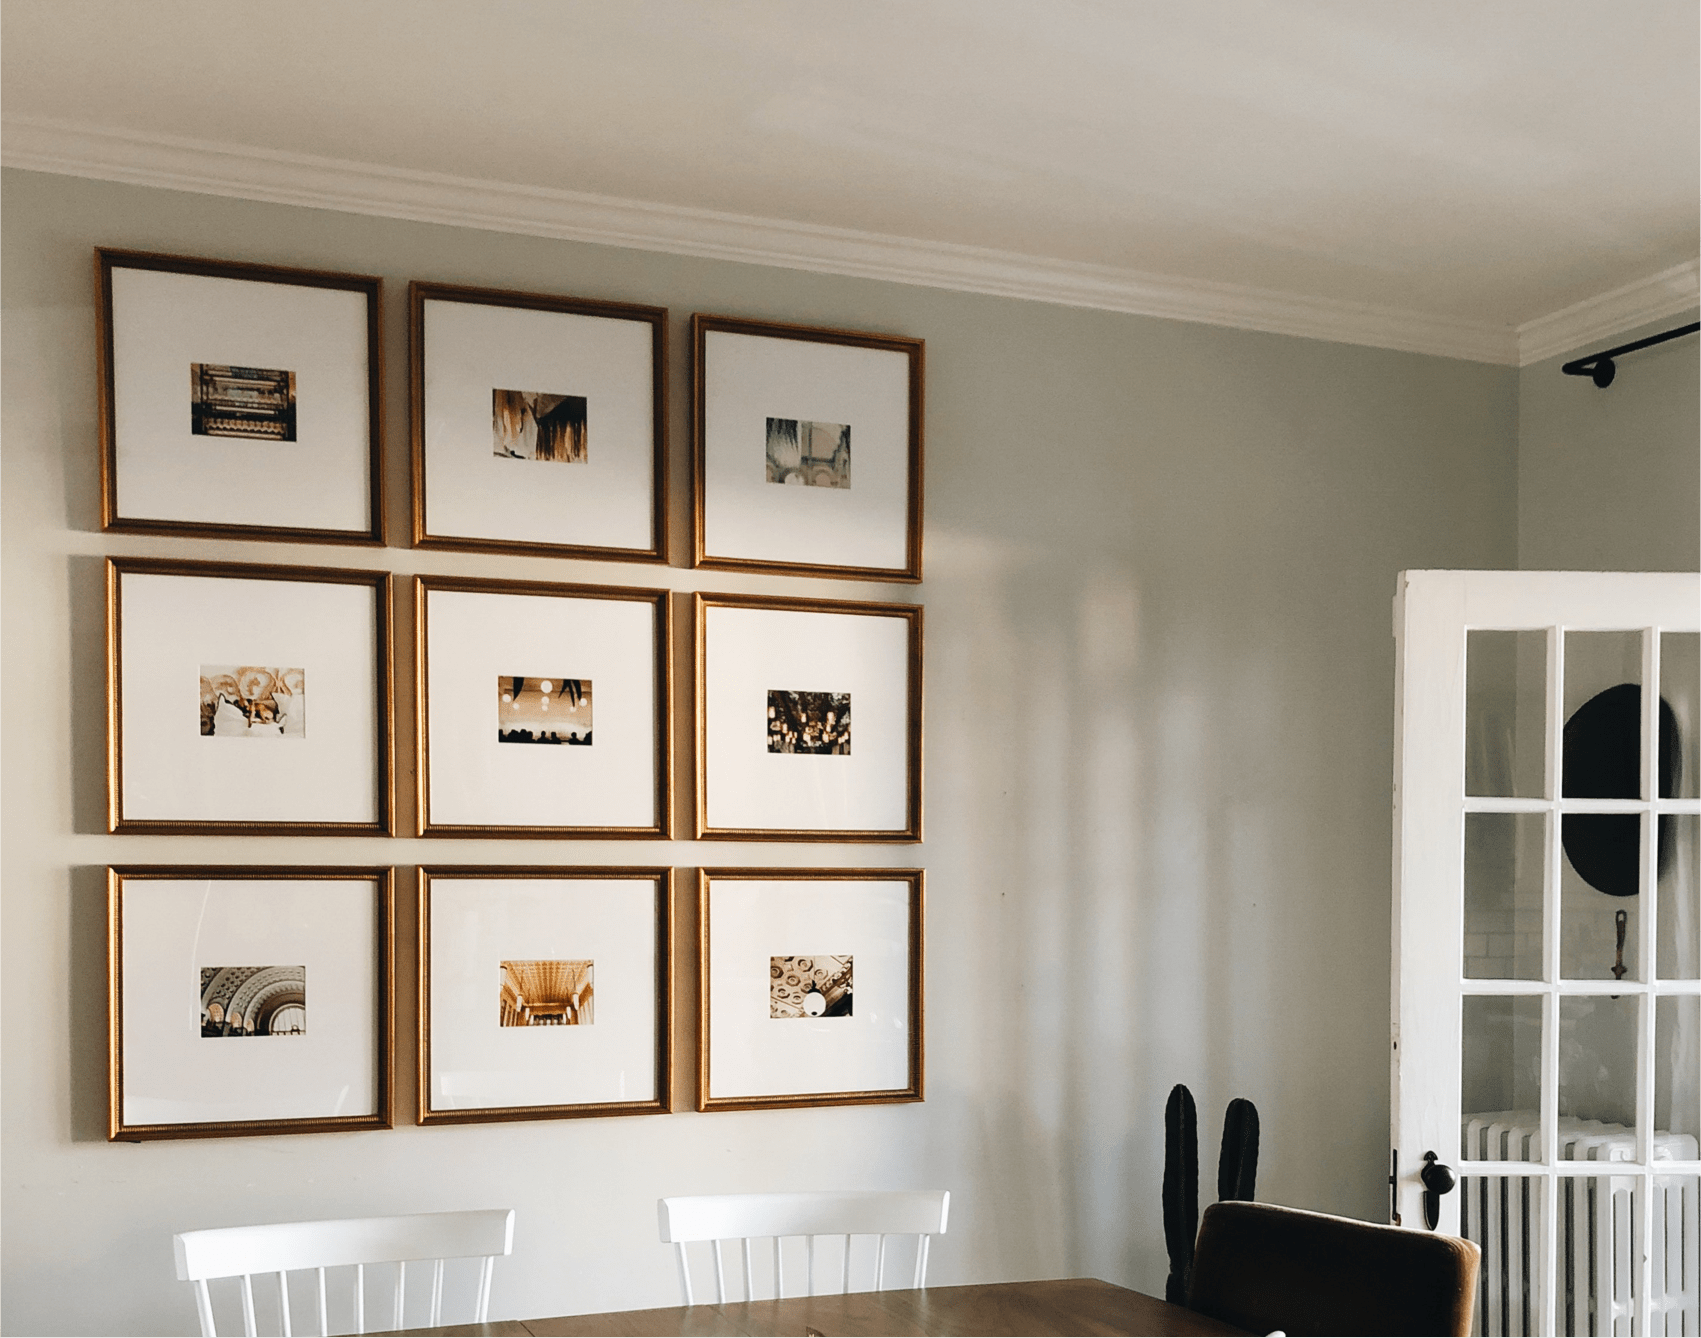 Tips for Picking Photos for your Gallery Wall